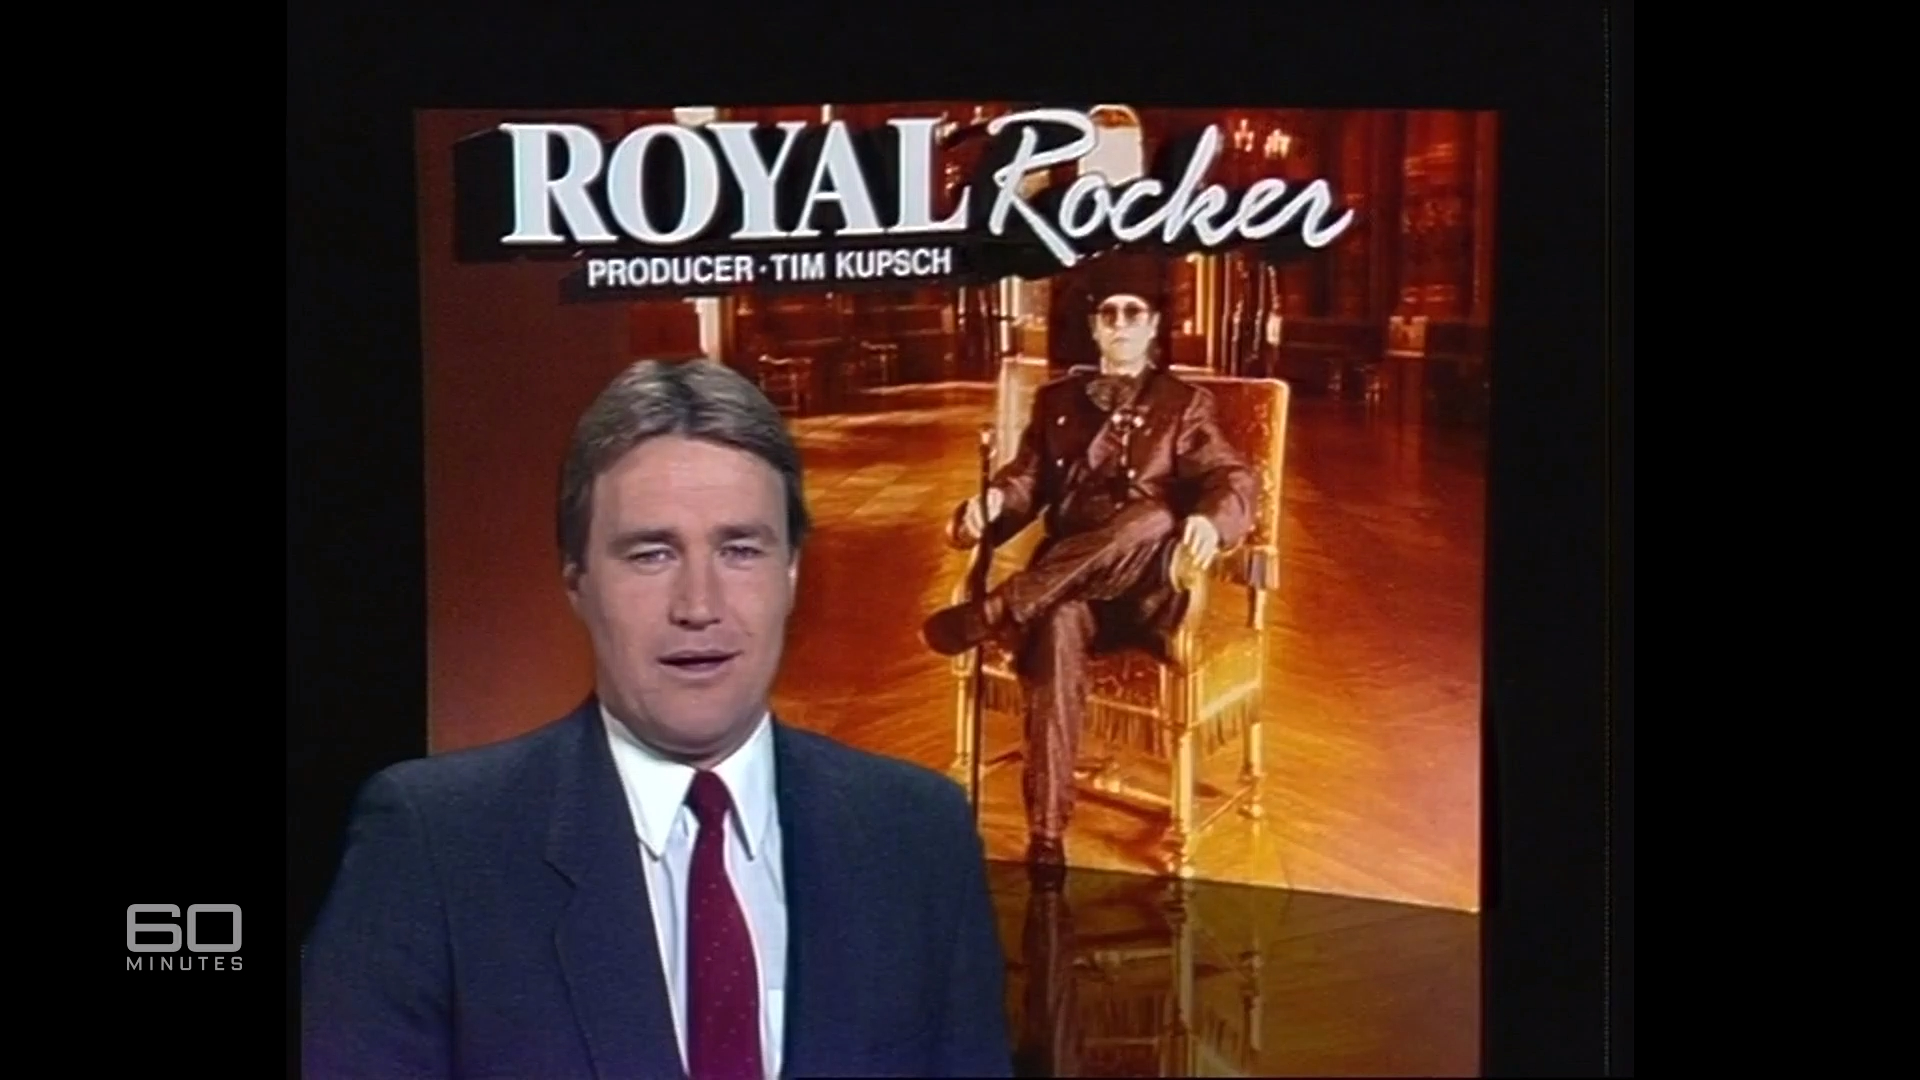 Royal Rocker (1986)